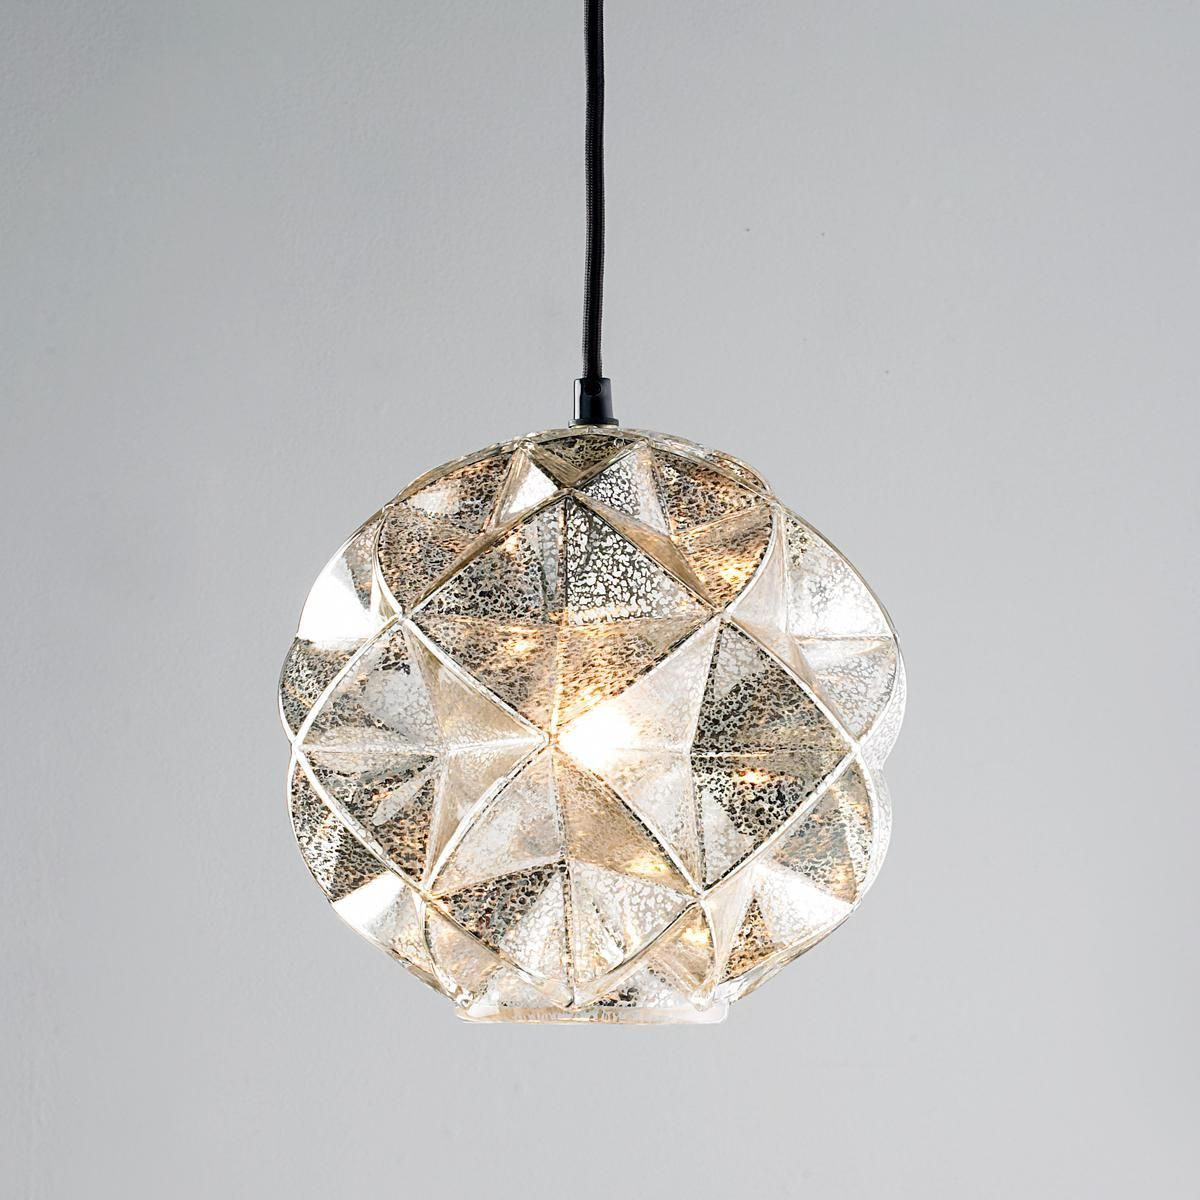 Mercury Glass Pendant Light Fixture Amusing Mercury Glass Geodesic Dome Pendant Light  Mercury Glass Pendant Decorating Design